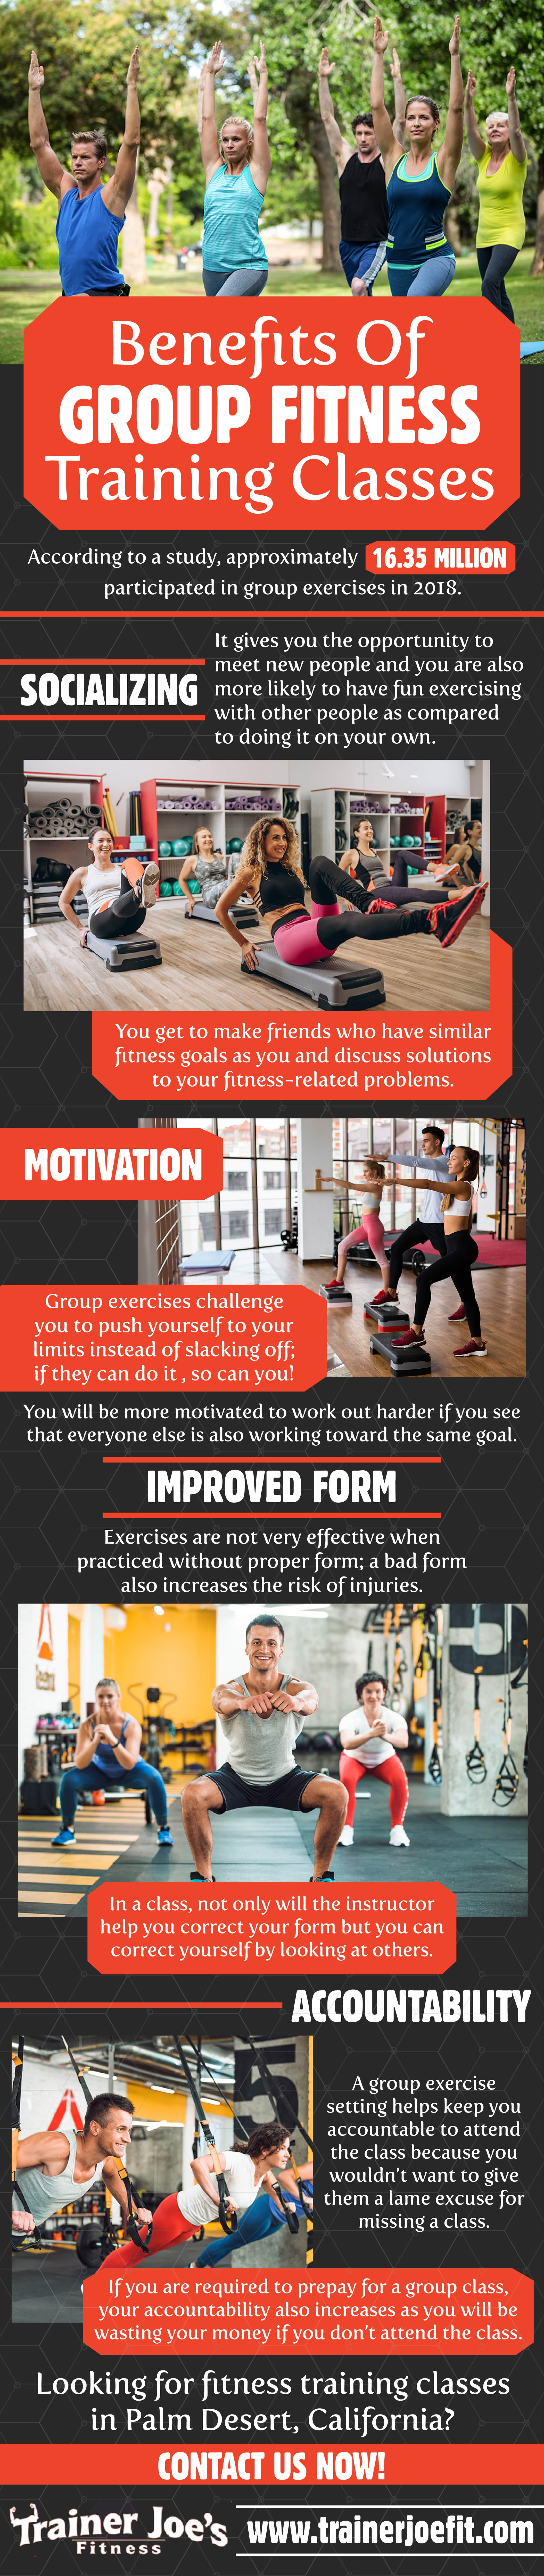 Benefits of Group Fitness Training Classes: